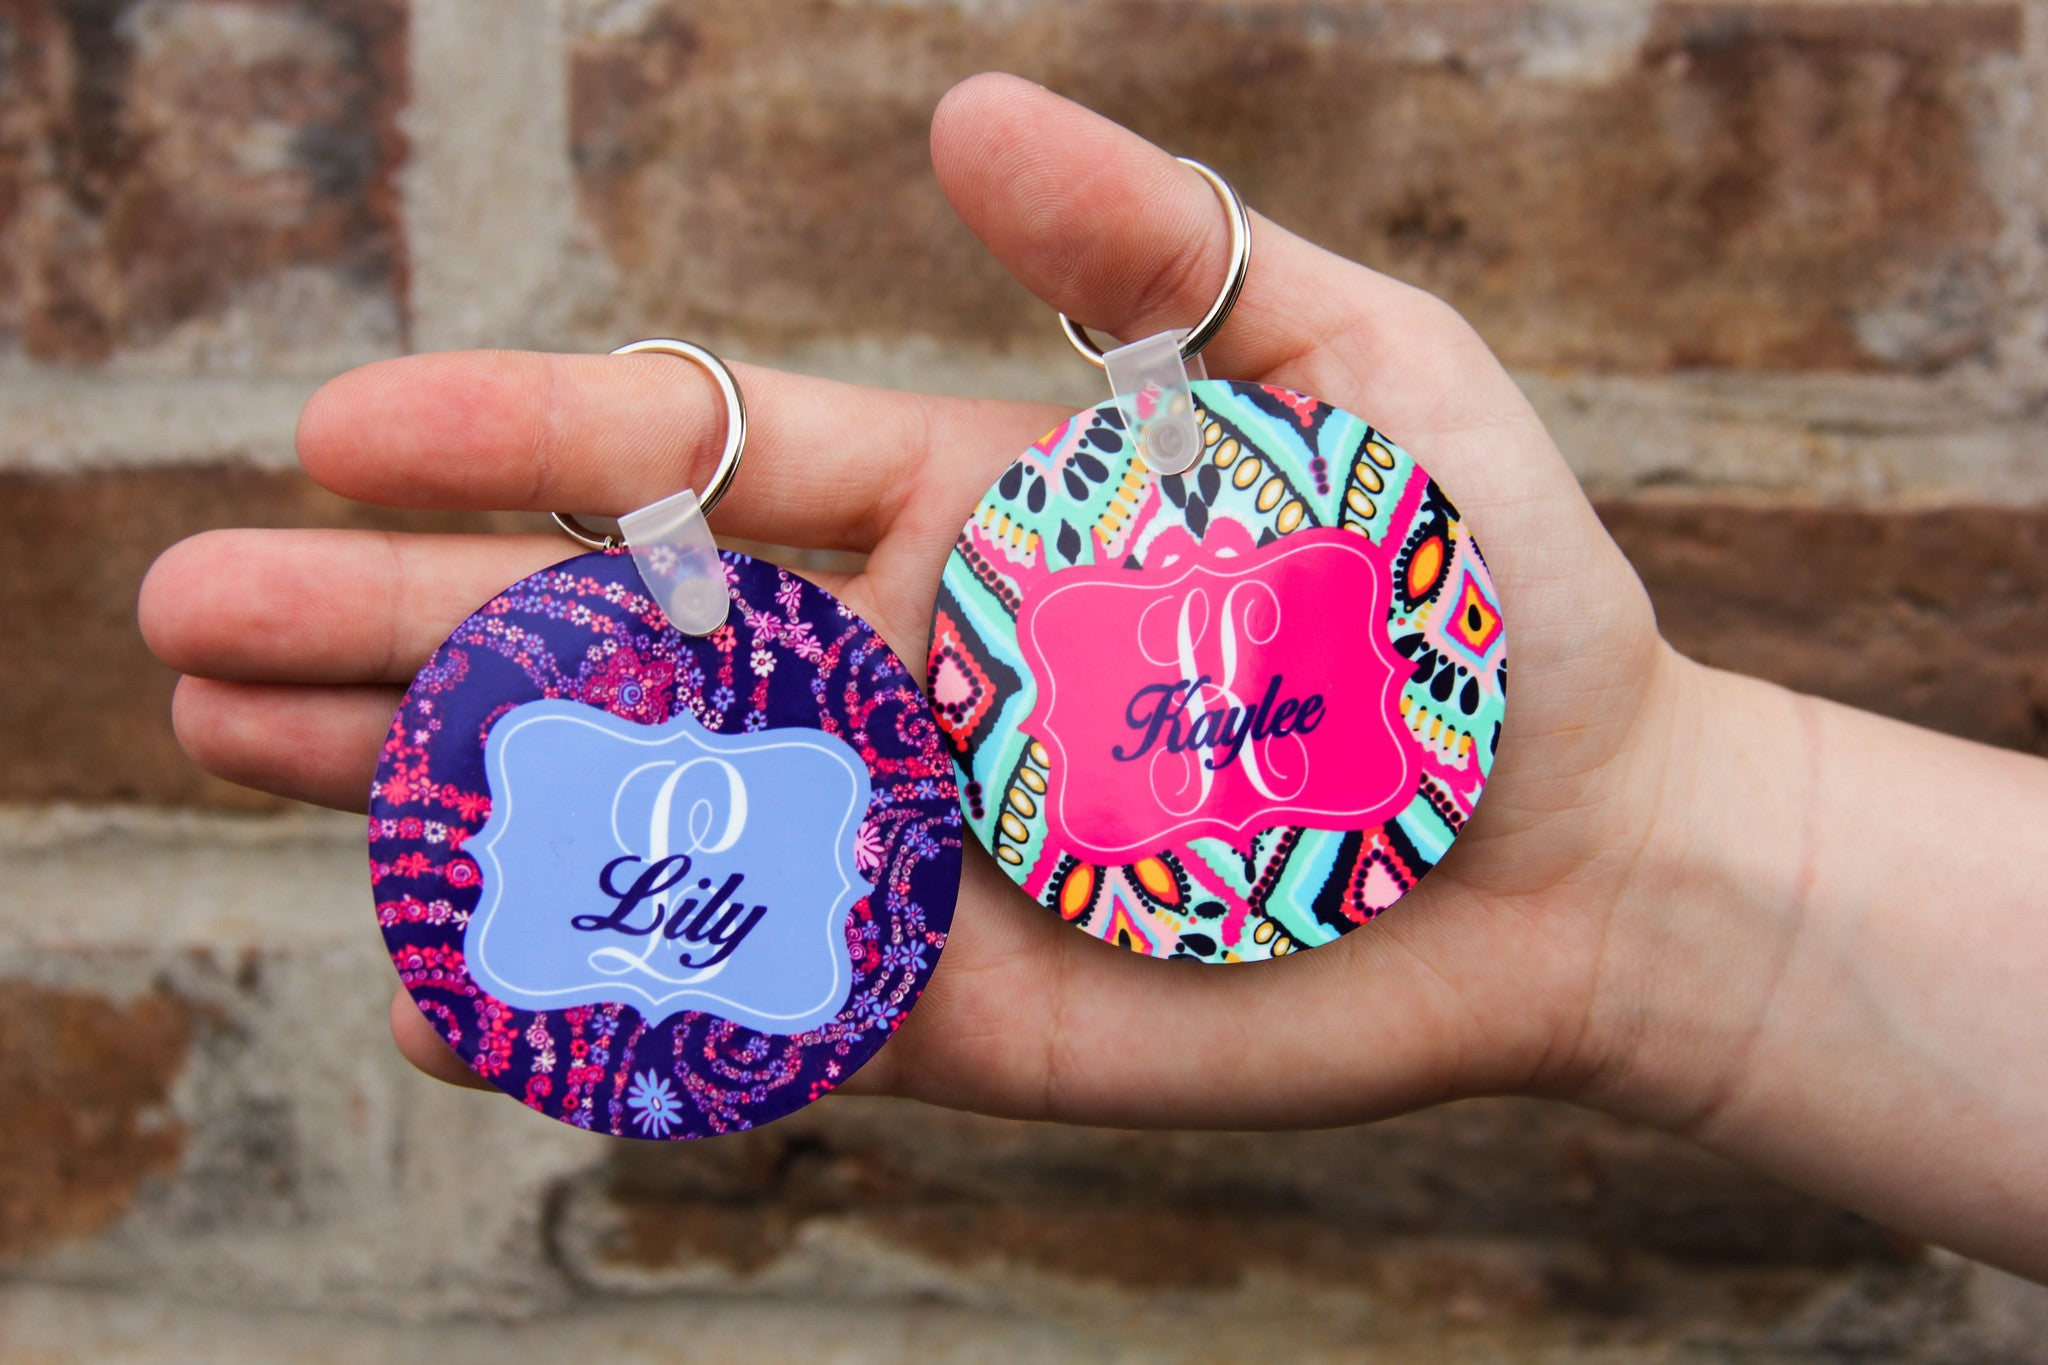 Double Sided Keychain w/ Personalized Name – Darling Custom